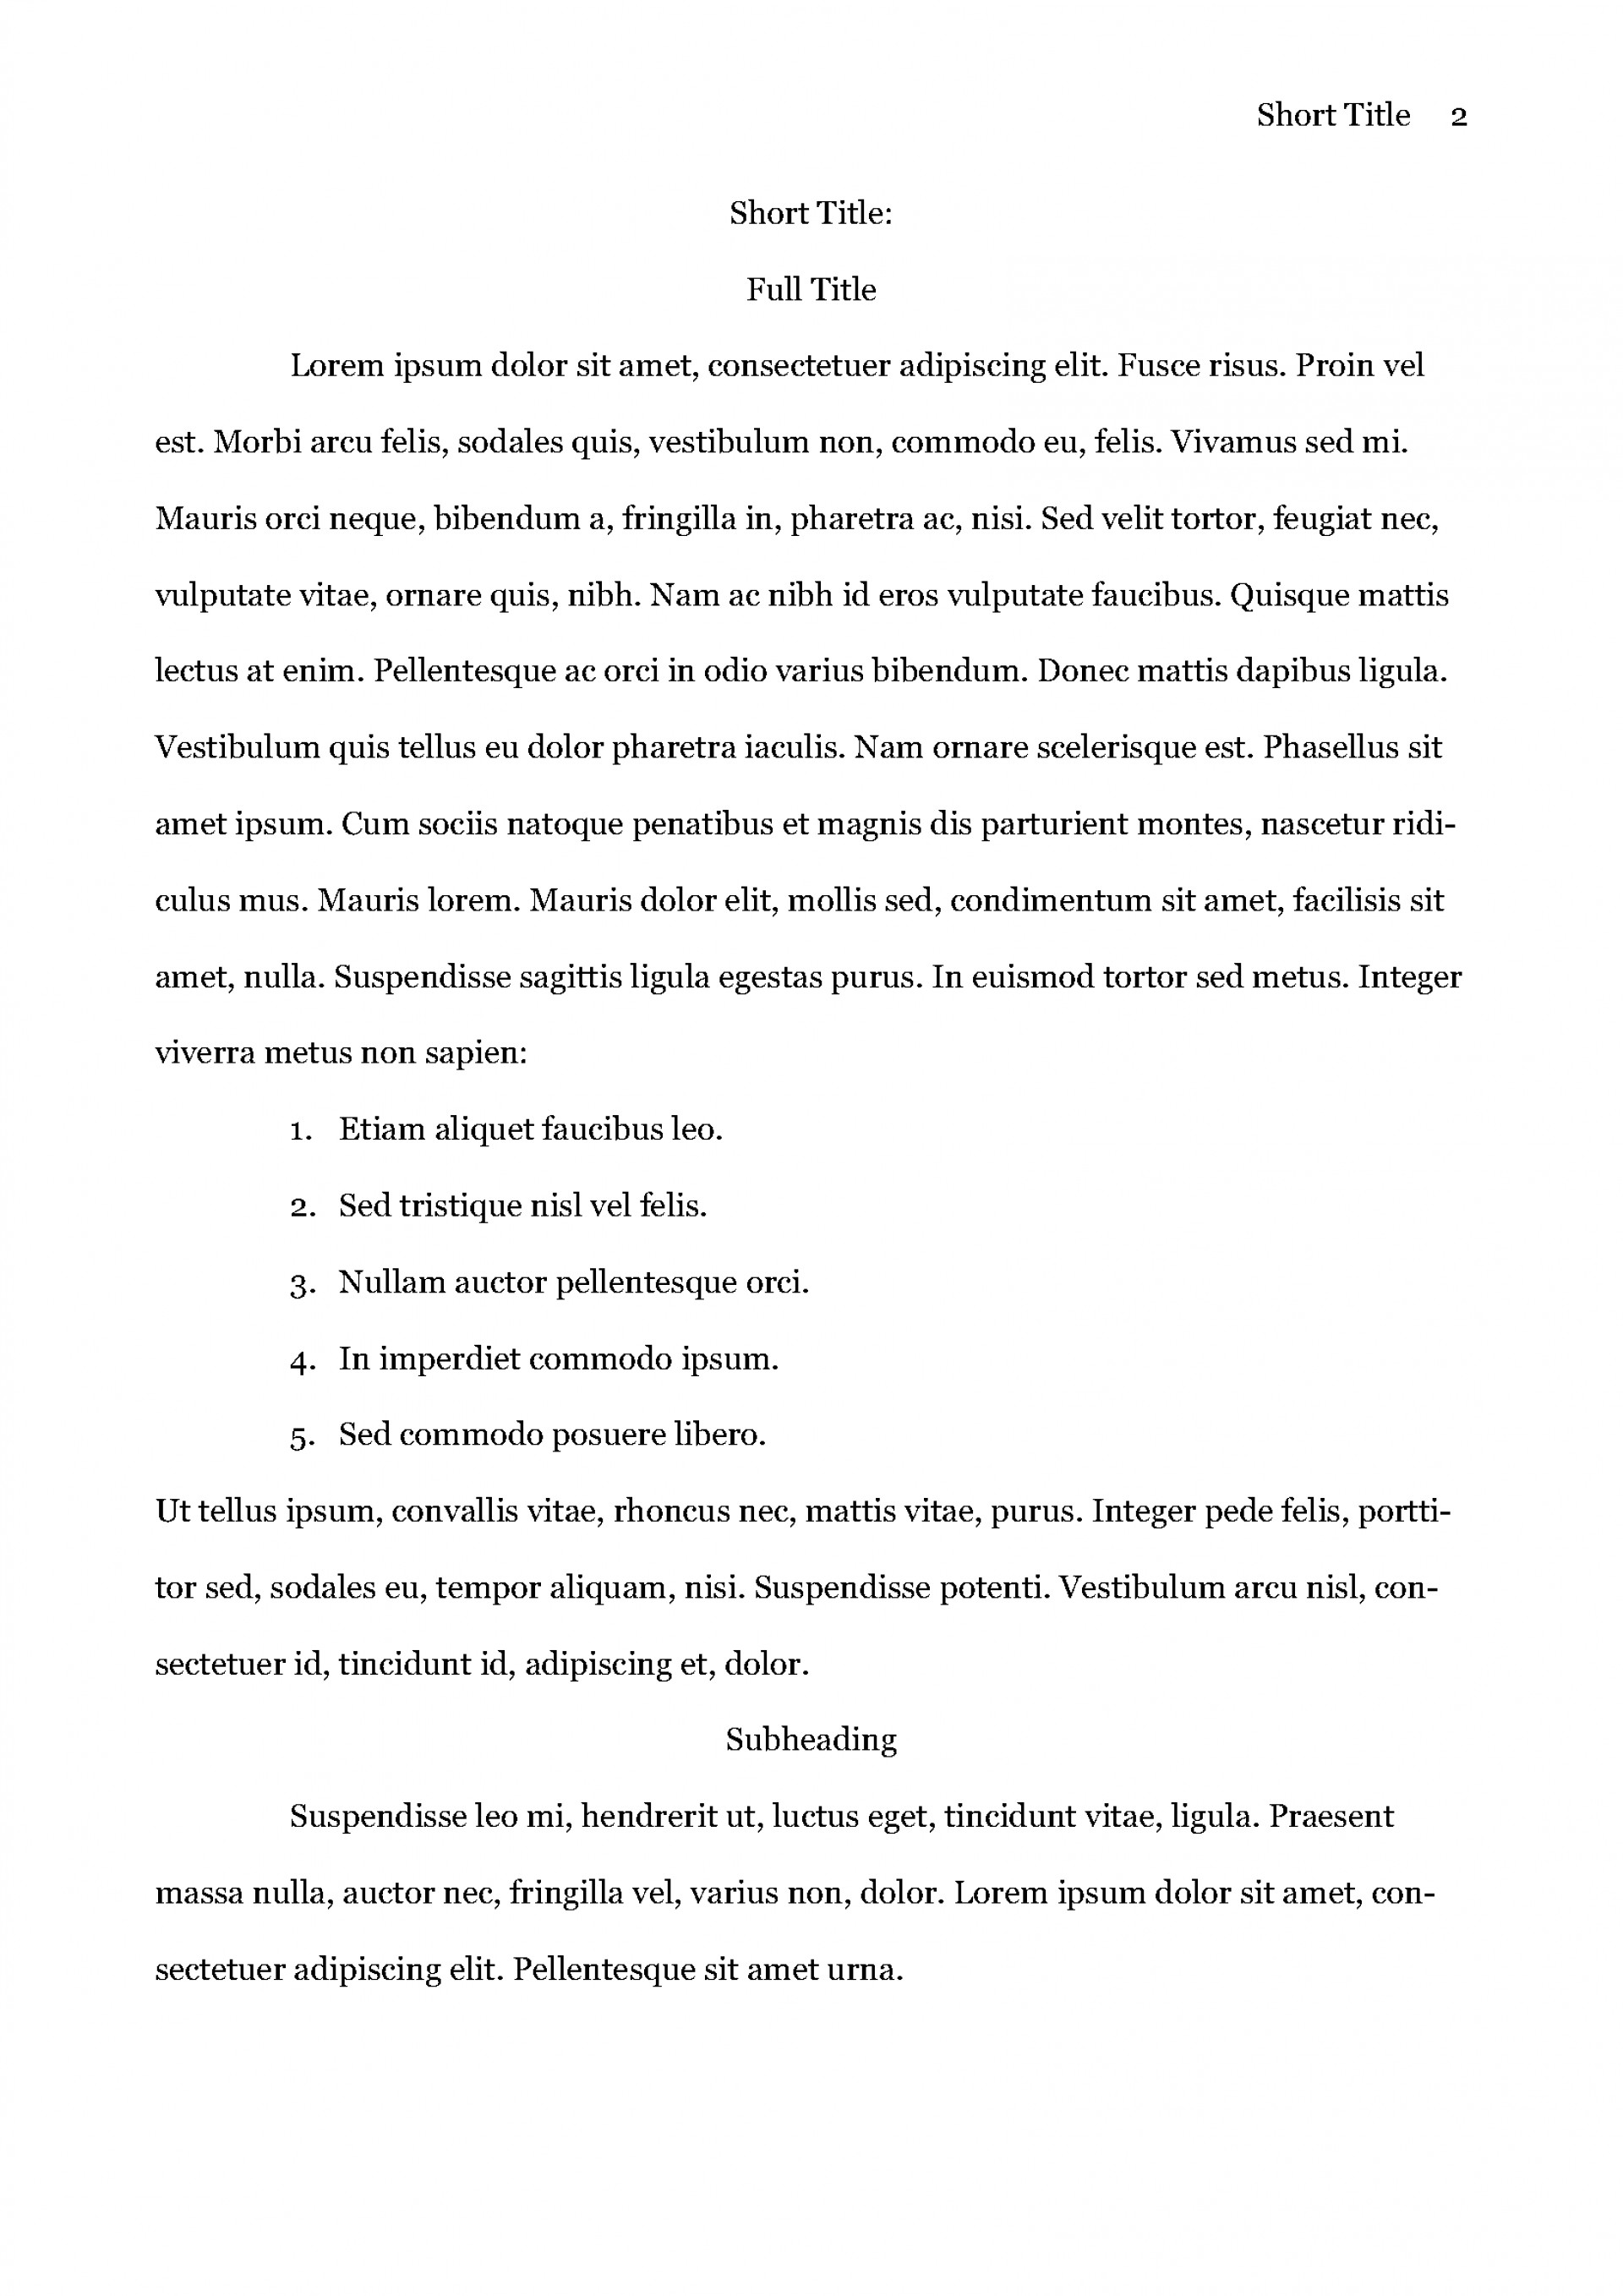 005 Apa Sample Page 2 Format For Research Paper Stupendous Template Word Outline 1920